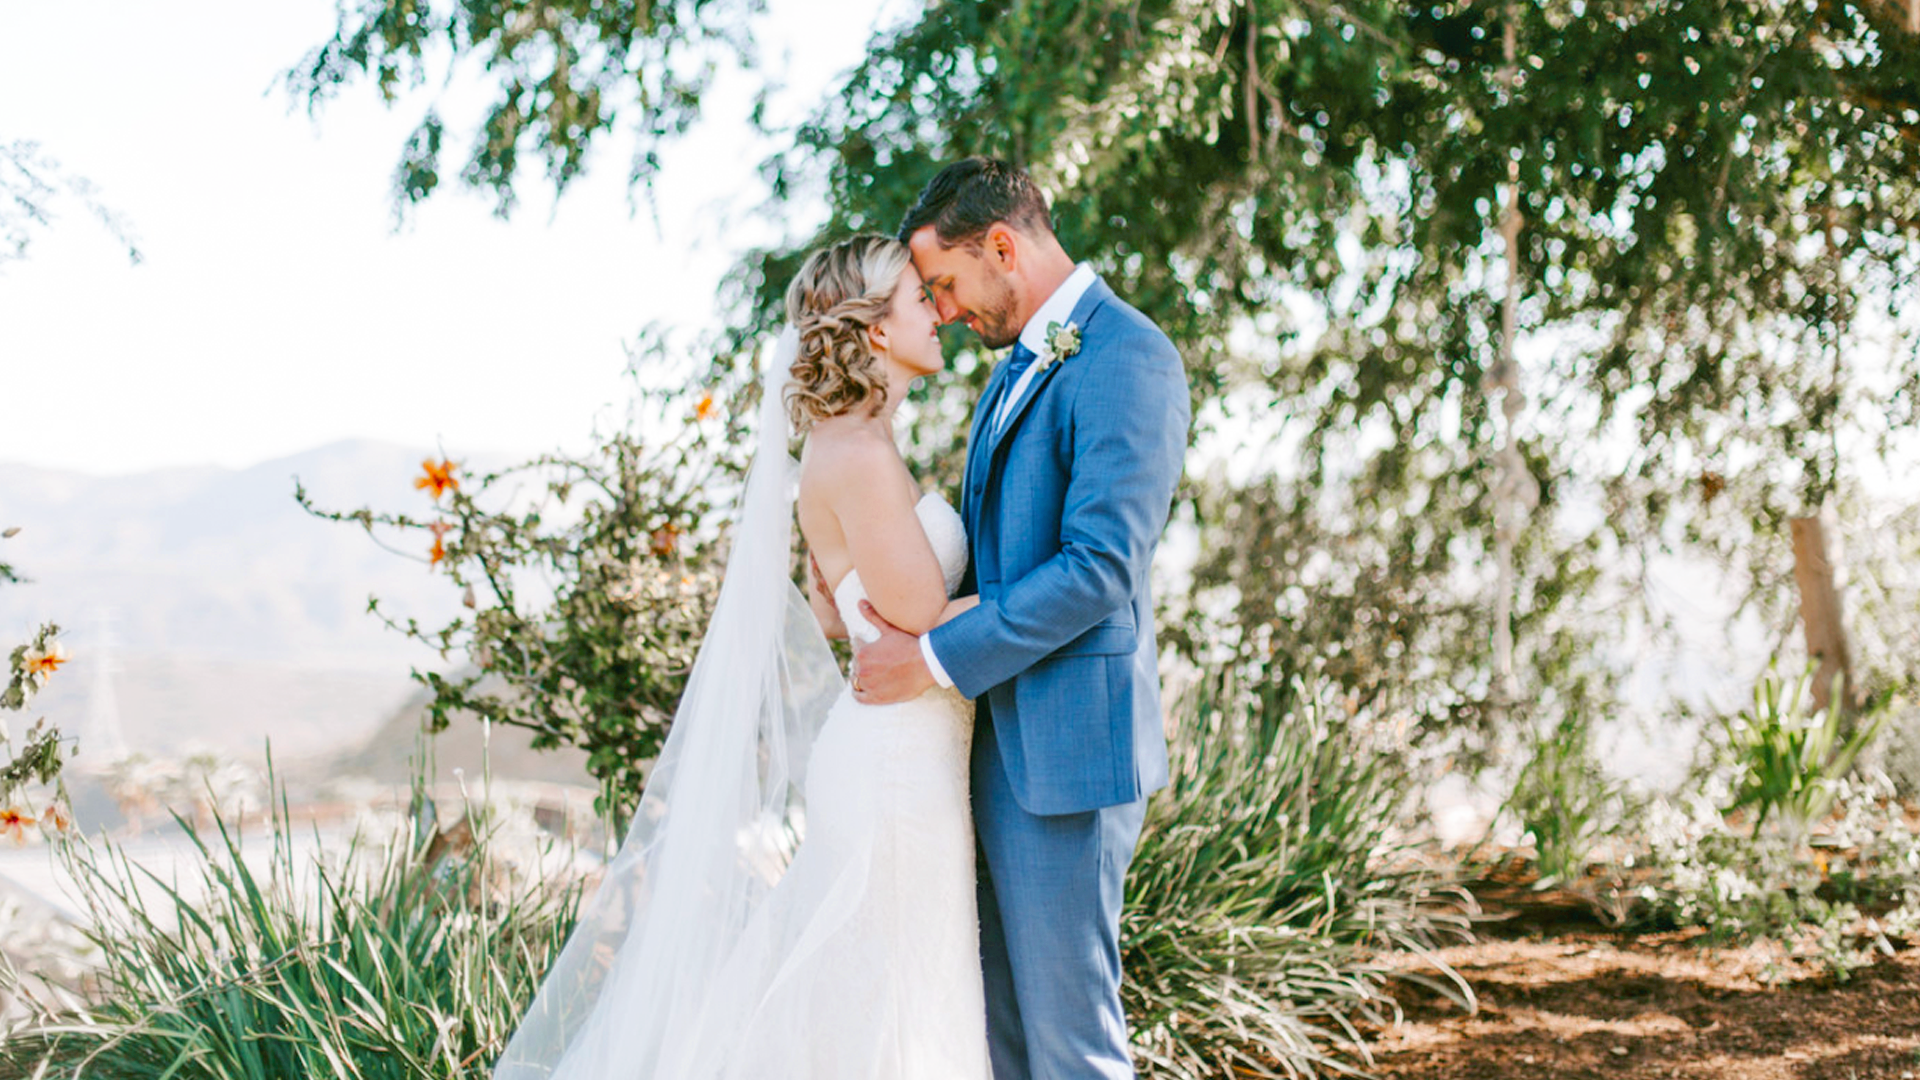 Eric + Michelle | Silverado, California | The Estate